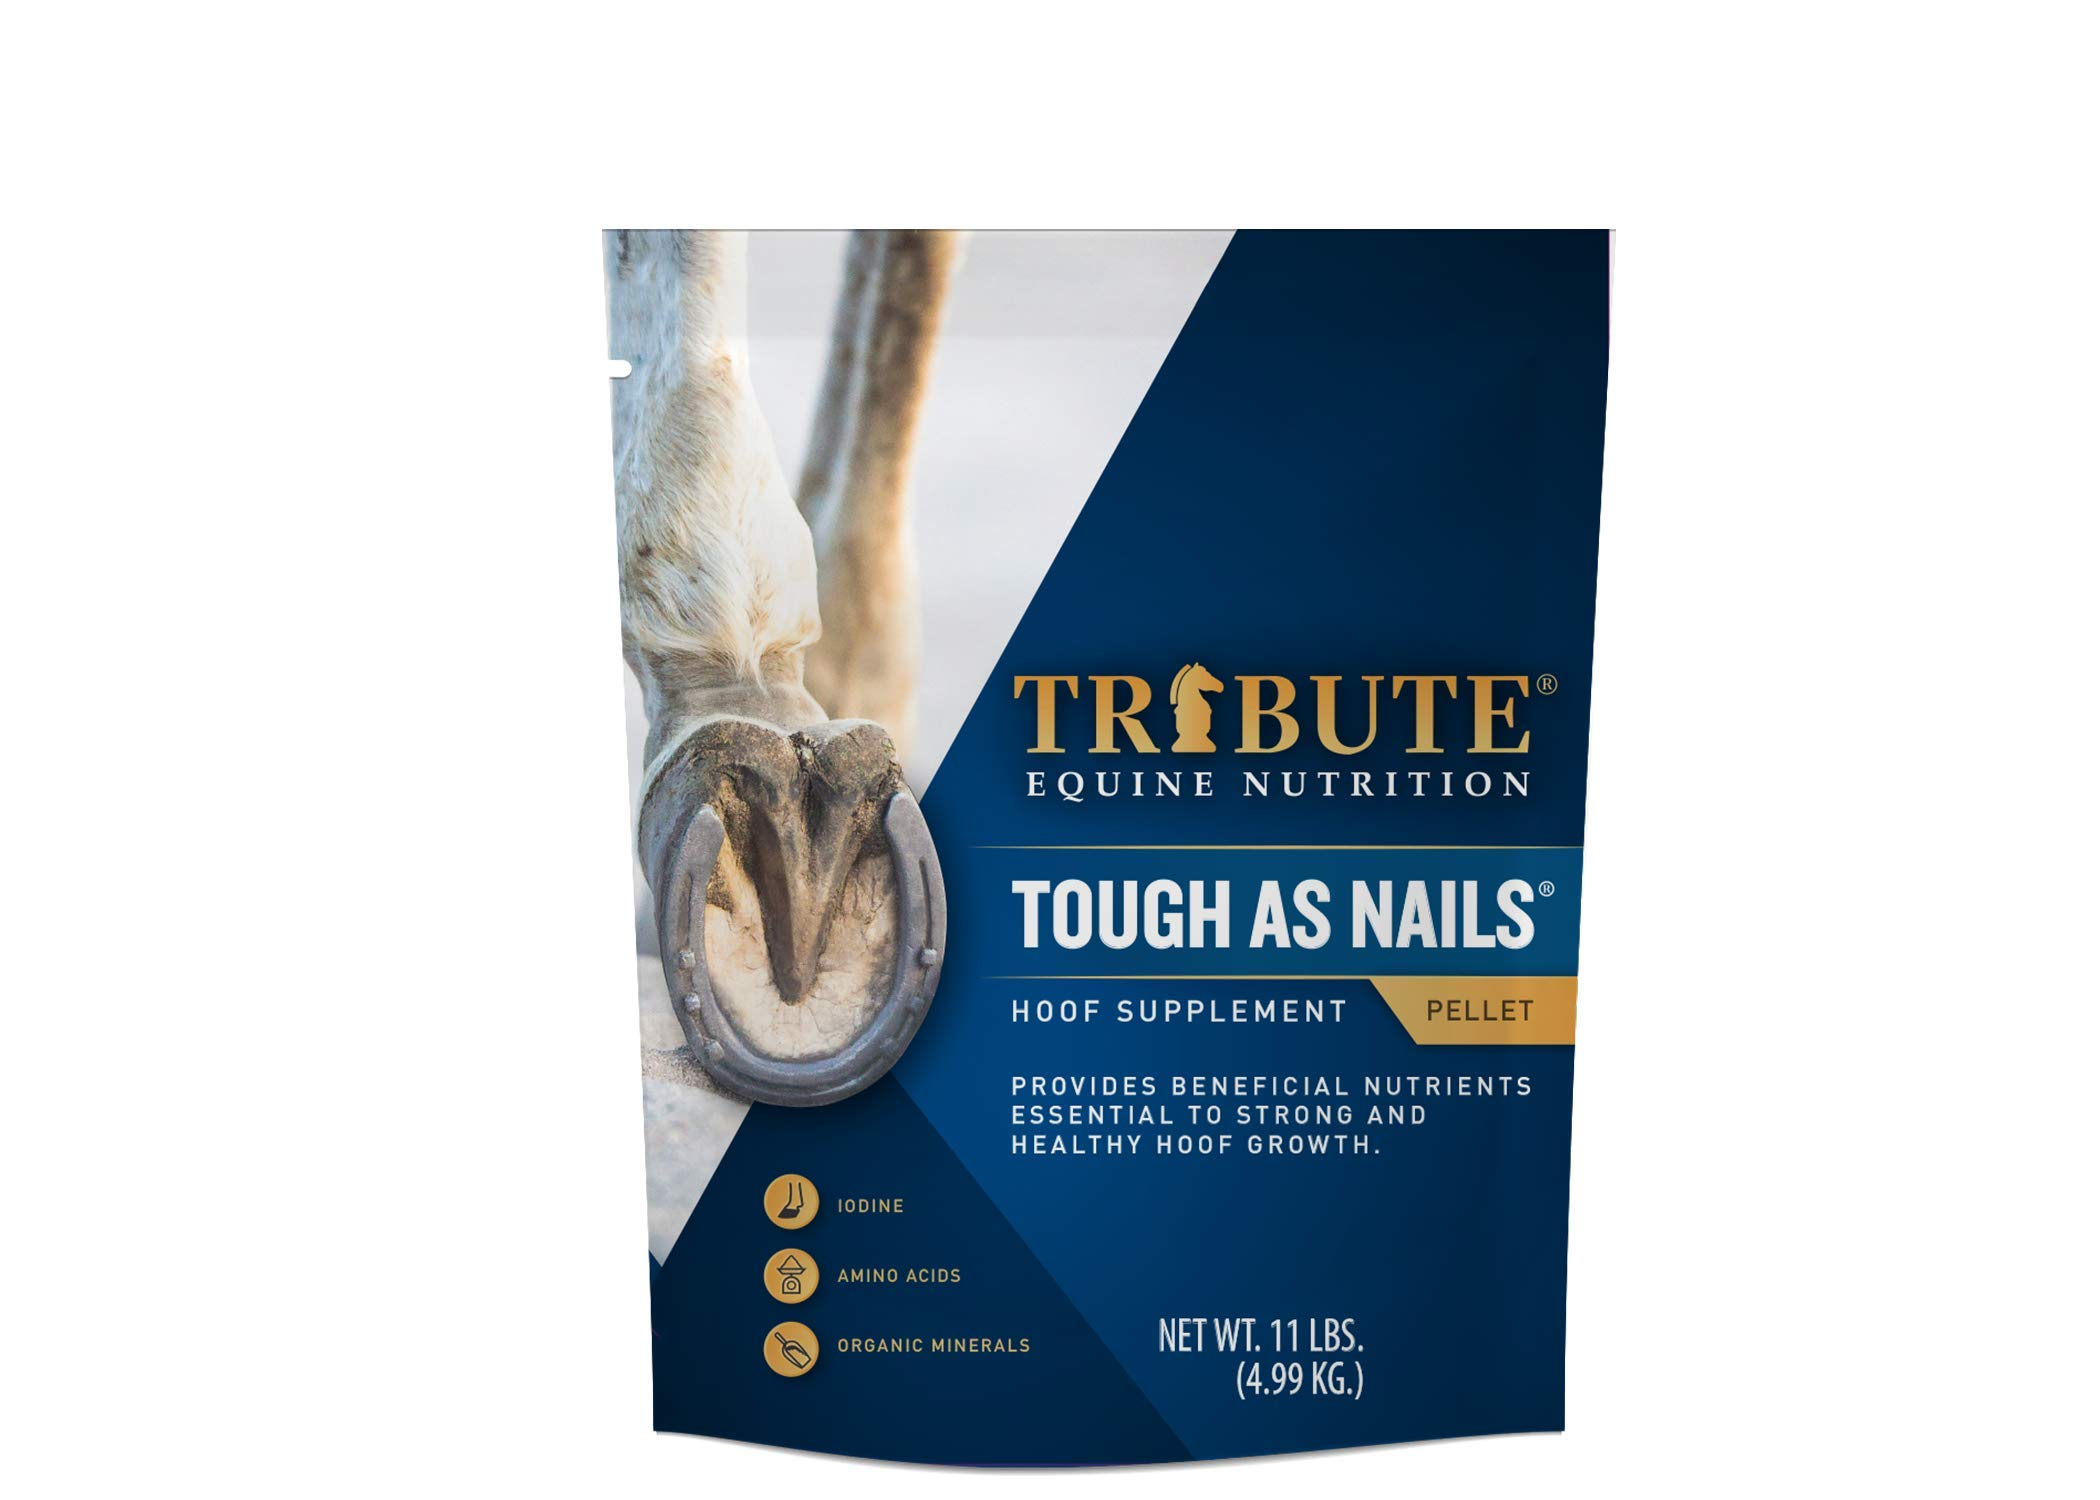 Tribute Tough As Nails 11lbs Pelleted Hoof Supplement by TRIBUTE